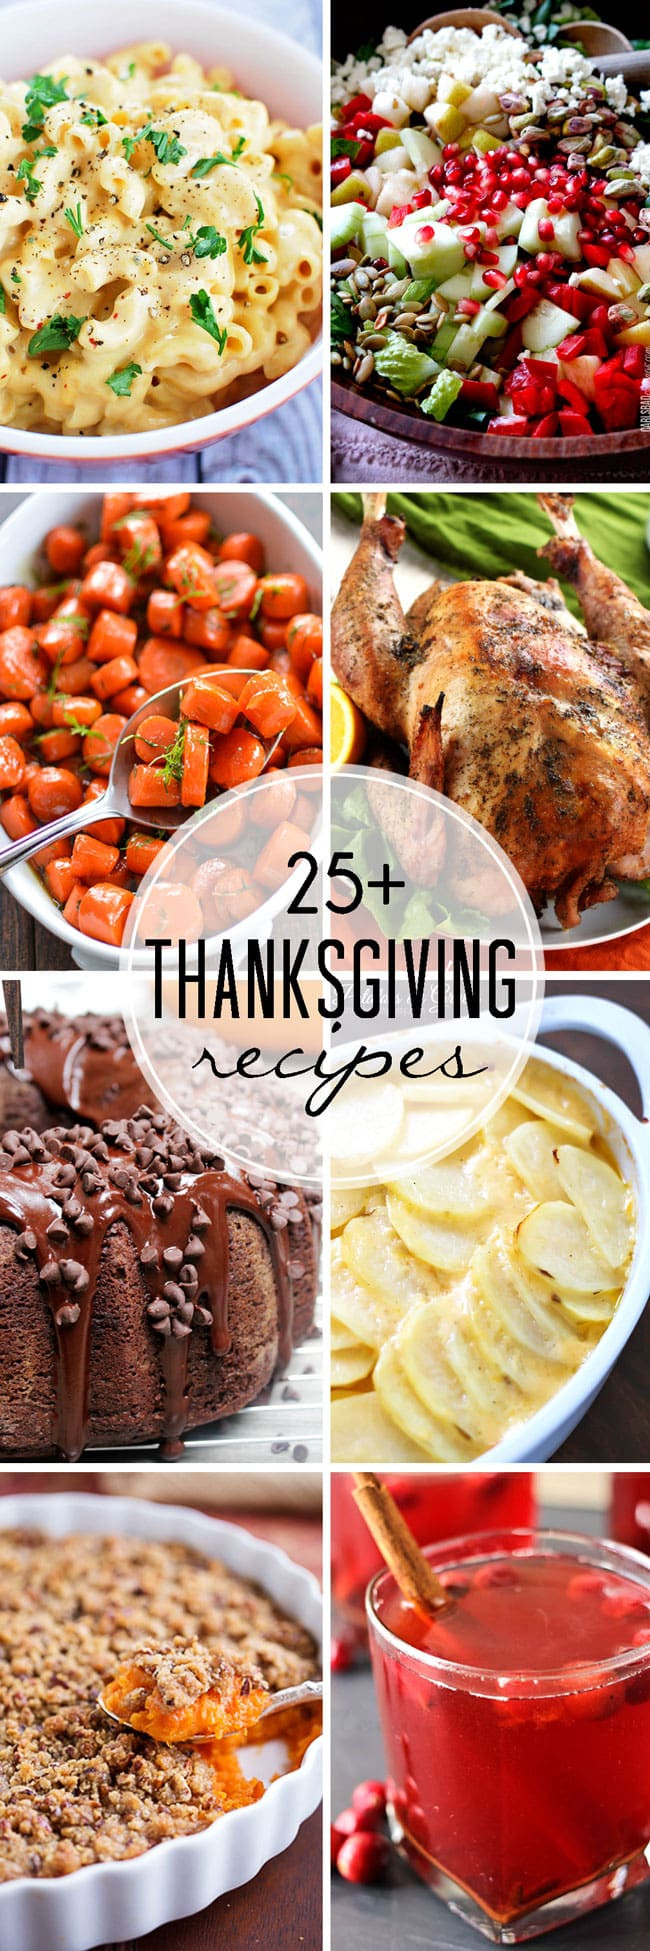 Thanksgiving Recipes Desserts  25 Thanksgiving Recipes That Skinny Chick Can Bake